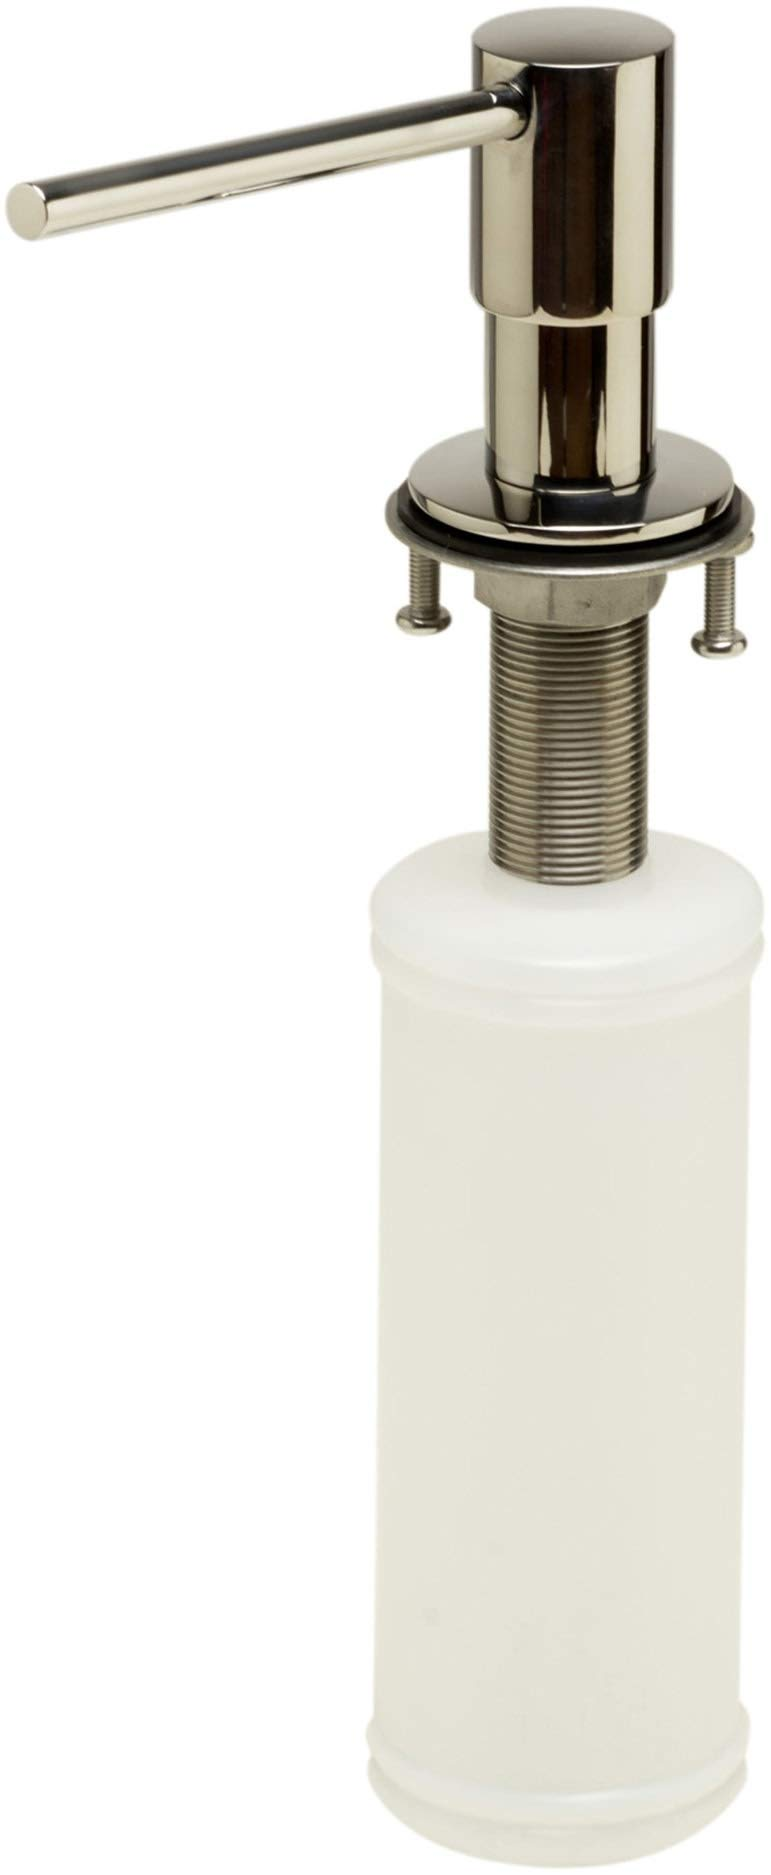 ALFI brand AB5006-PSS Modern Round Polished Stainless Steel Soap Dispenser